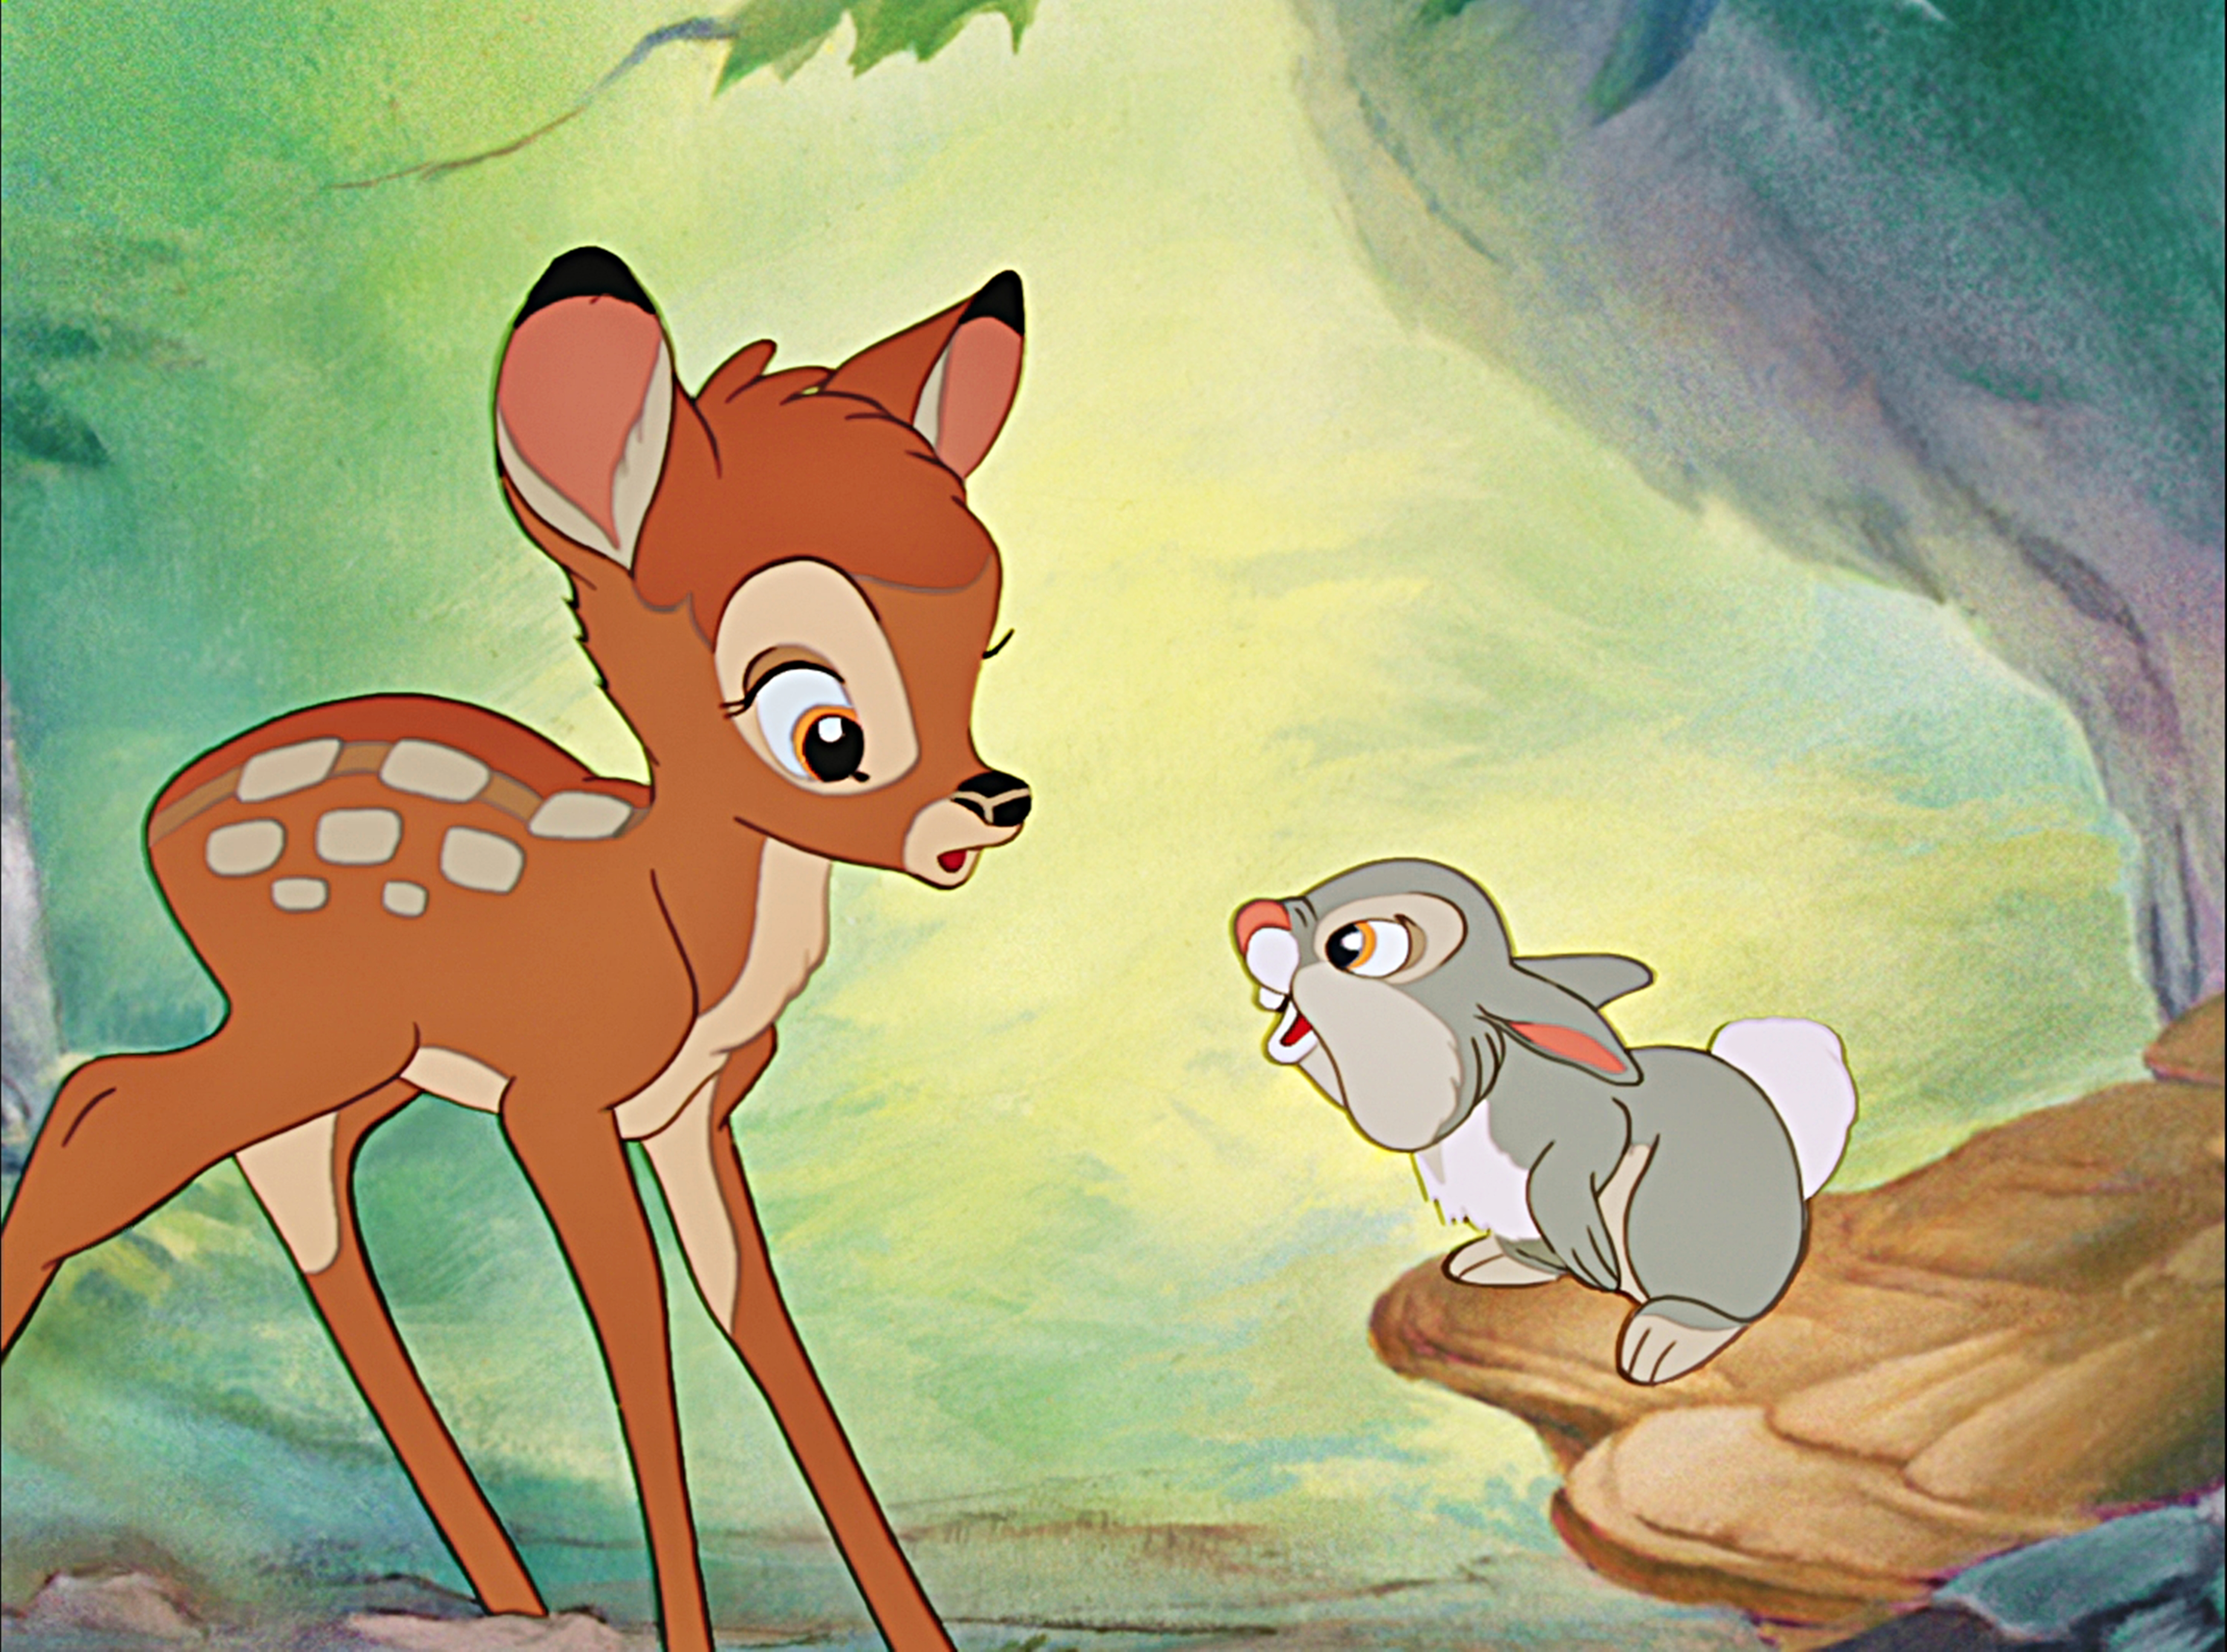 an examination of the nature the movie bambi portrays